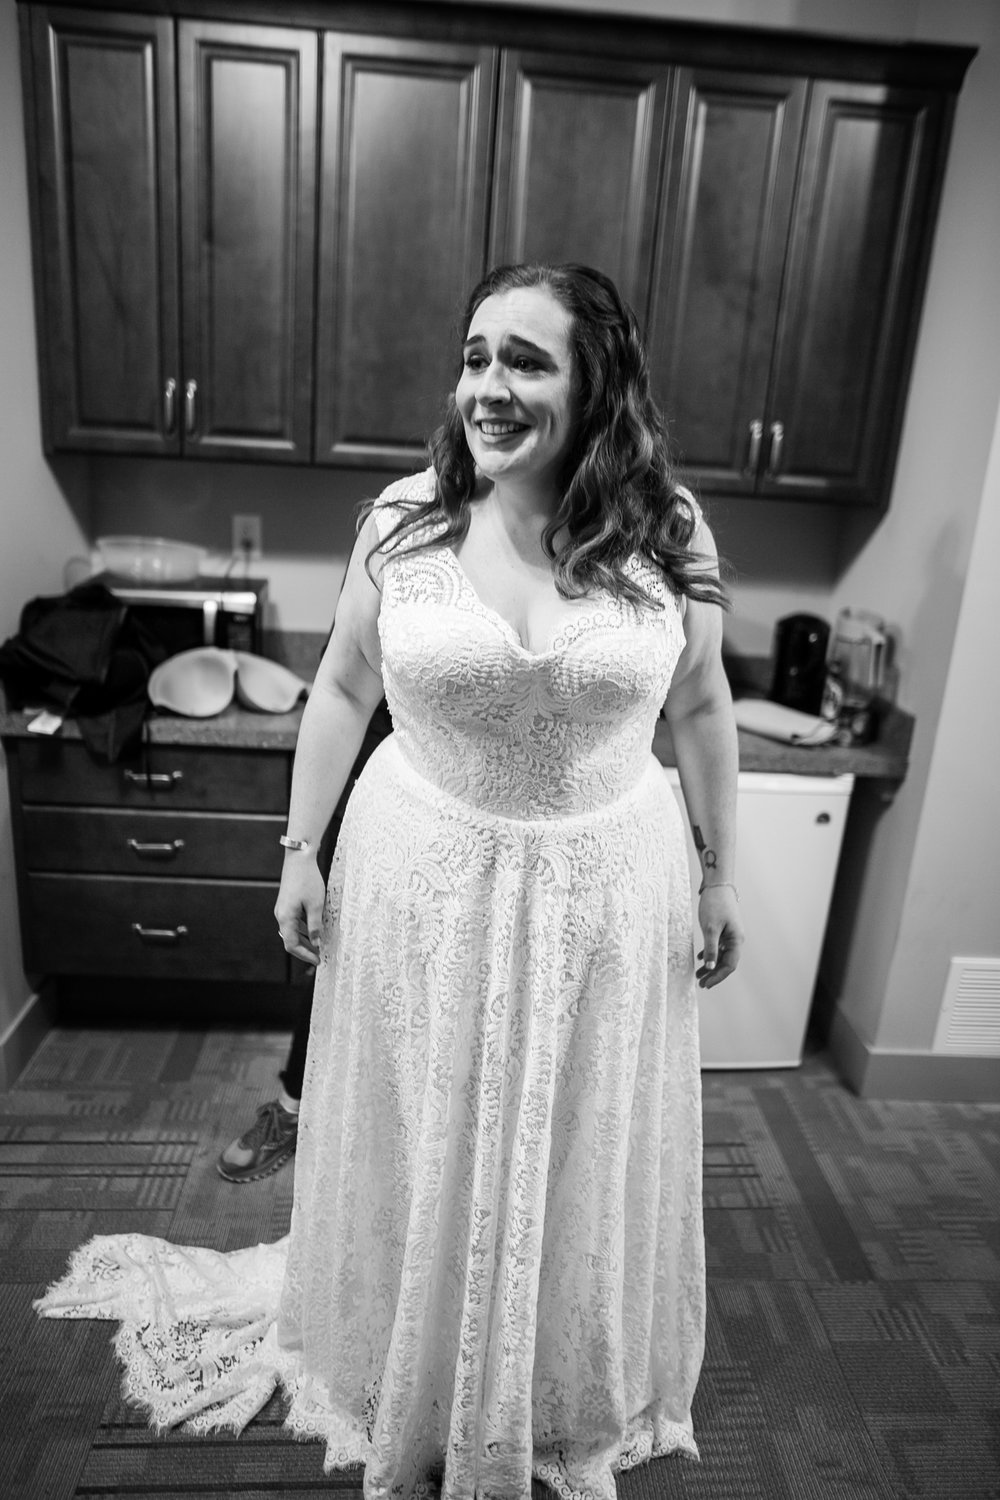 LGBTQ Philadelphia Wedding by Swiger Photography the Lesbian photographer 9